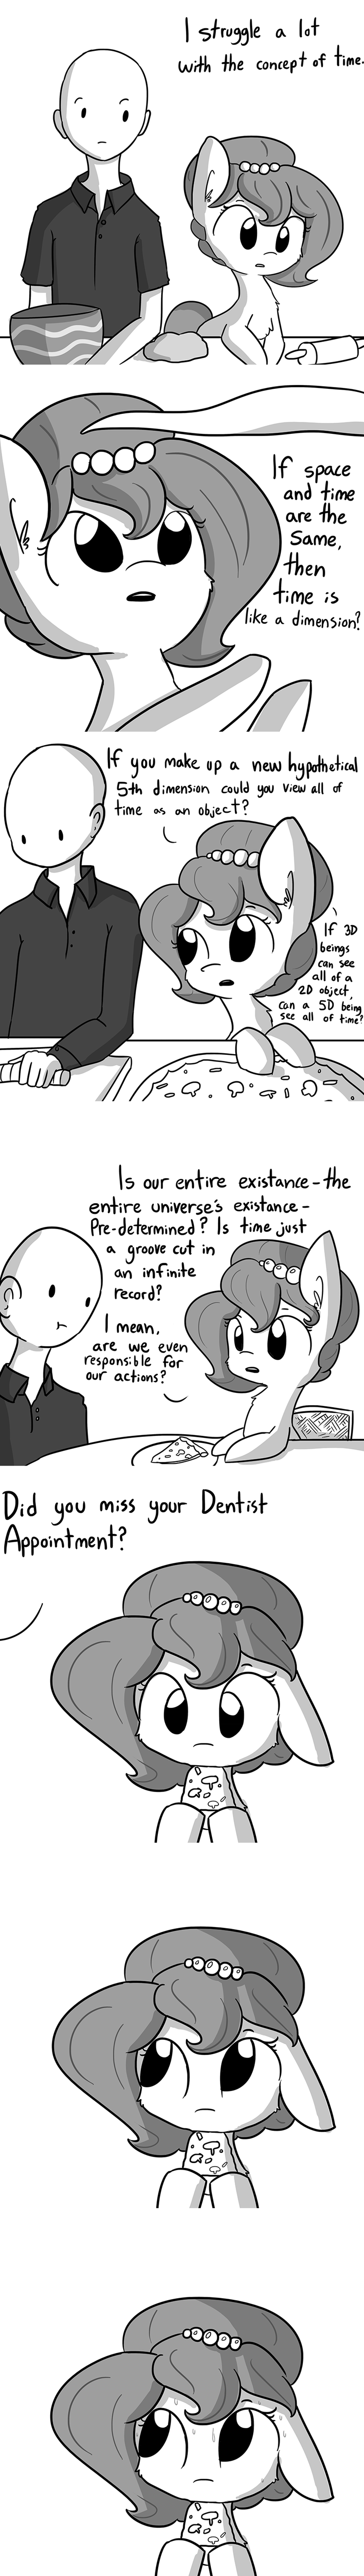 the nature of time comic horse wife - 8799681024